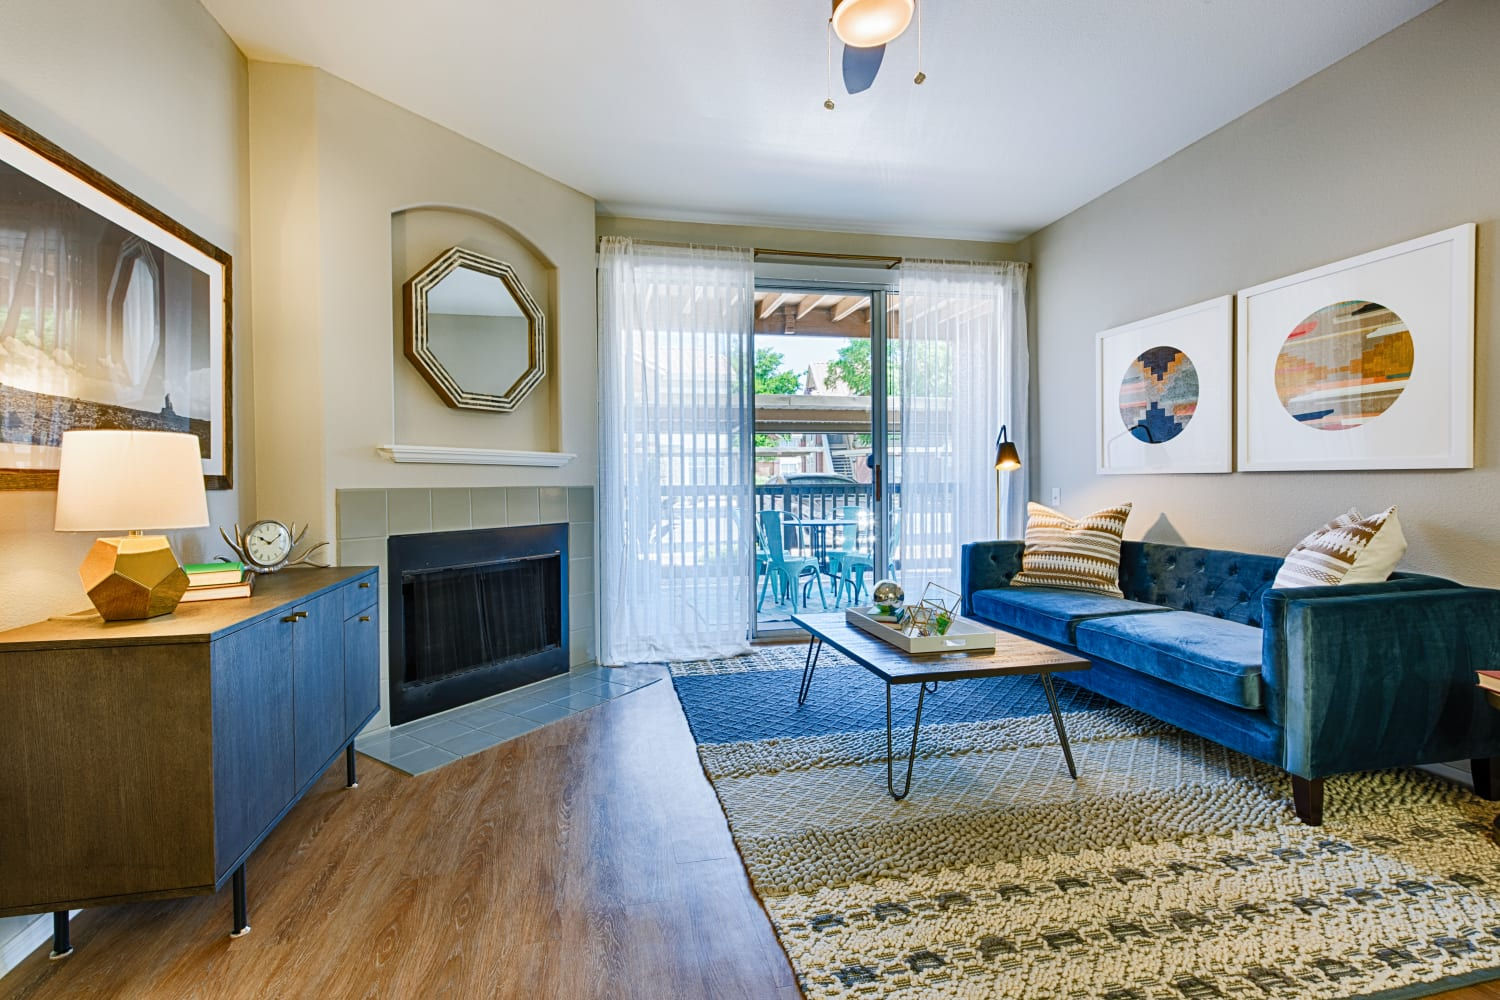 Sonoran Vista Apartments in Scottsdale, Arizona, offer living rooms with a fireplace, hardwood floors and private patio